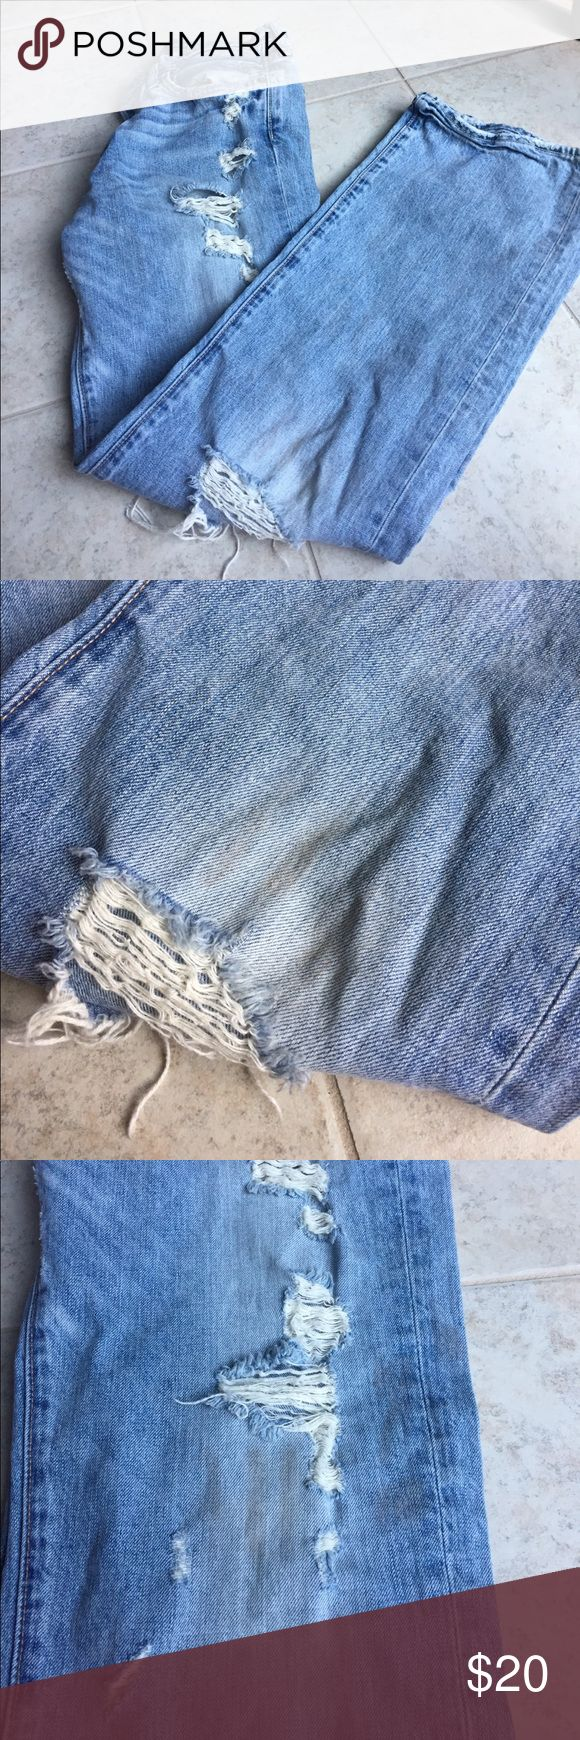 """Abercrombie and Fitch Distressed Jeans Selling on behalf of my brother. As seen in 2nd & 3rd photo the jeans are naturally distressed. They have the same 3 """"dirt"""" lines on both the right and left leg. Size 32X34. Kilburn Low Rise Boot Cut. Abercrombie & Fitch Jeans Bootcut"""